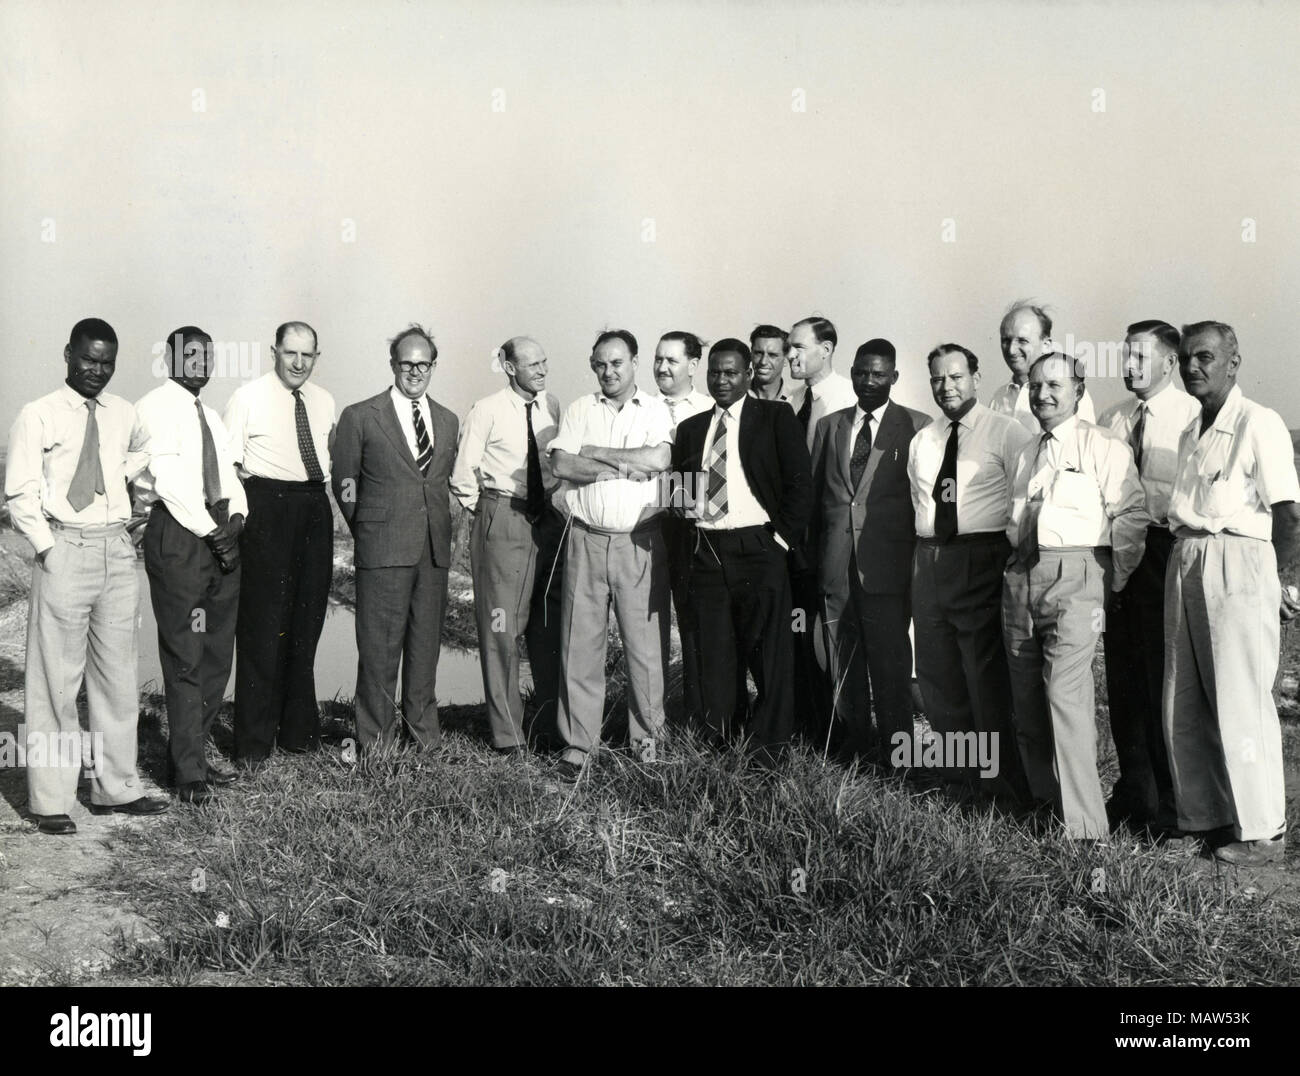 Party of members, ministers, and ponder personnel, Rhodesian Selection Trust, Kafue Pilot Polder, Zambia, South Rhodesia 1959 - Stock Image